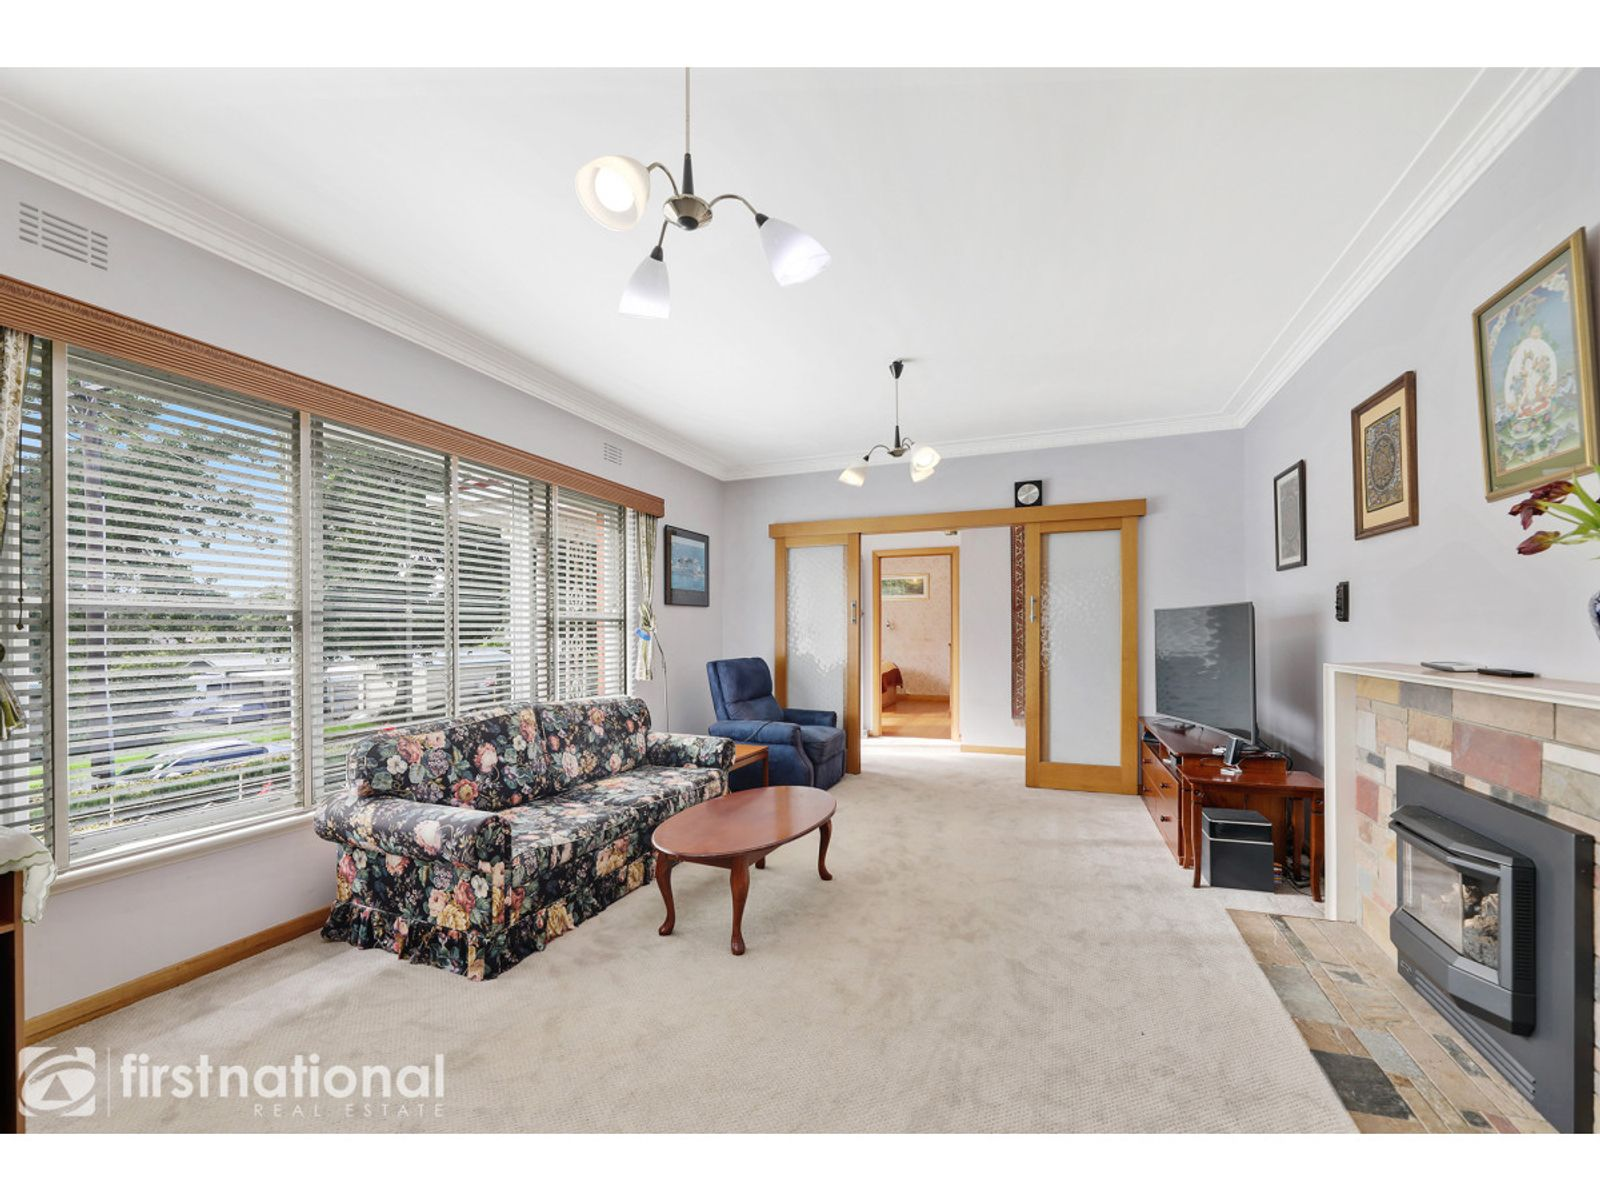 1 George Street, Warragul, VIC 3820